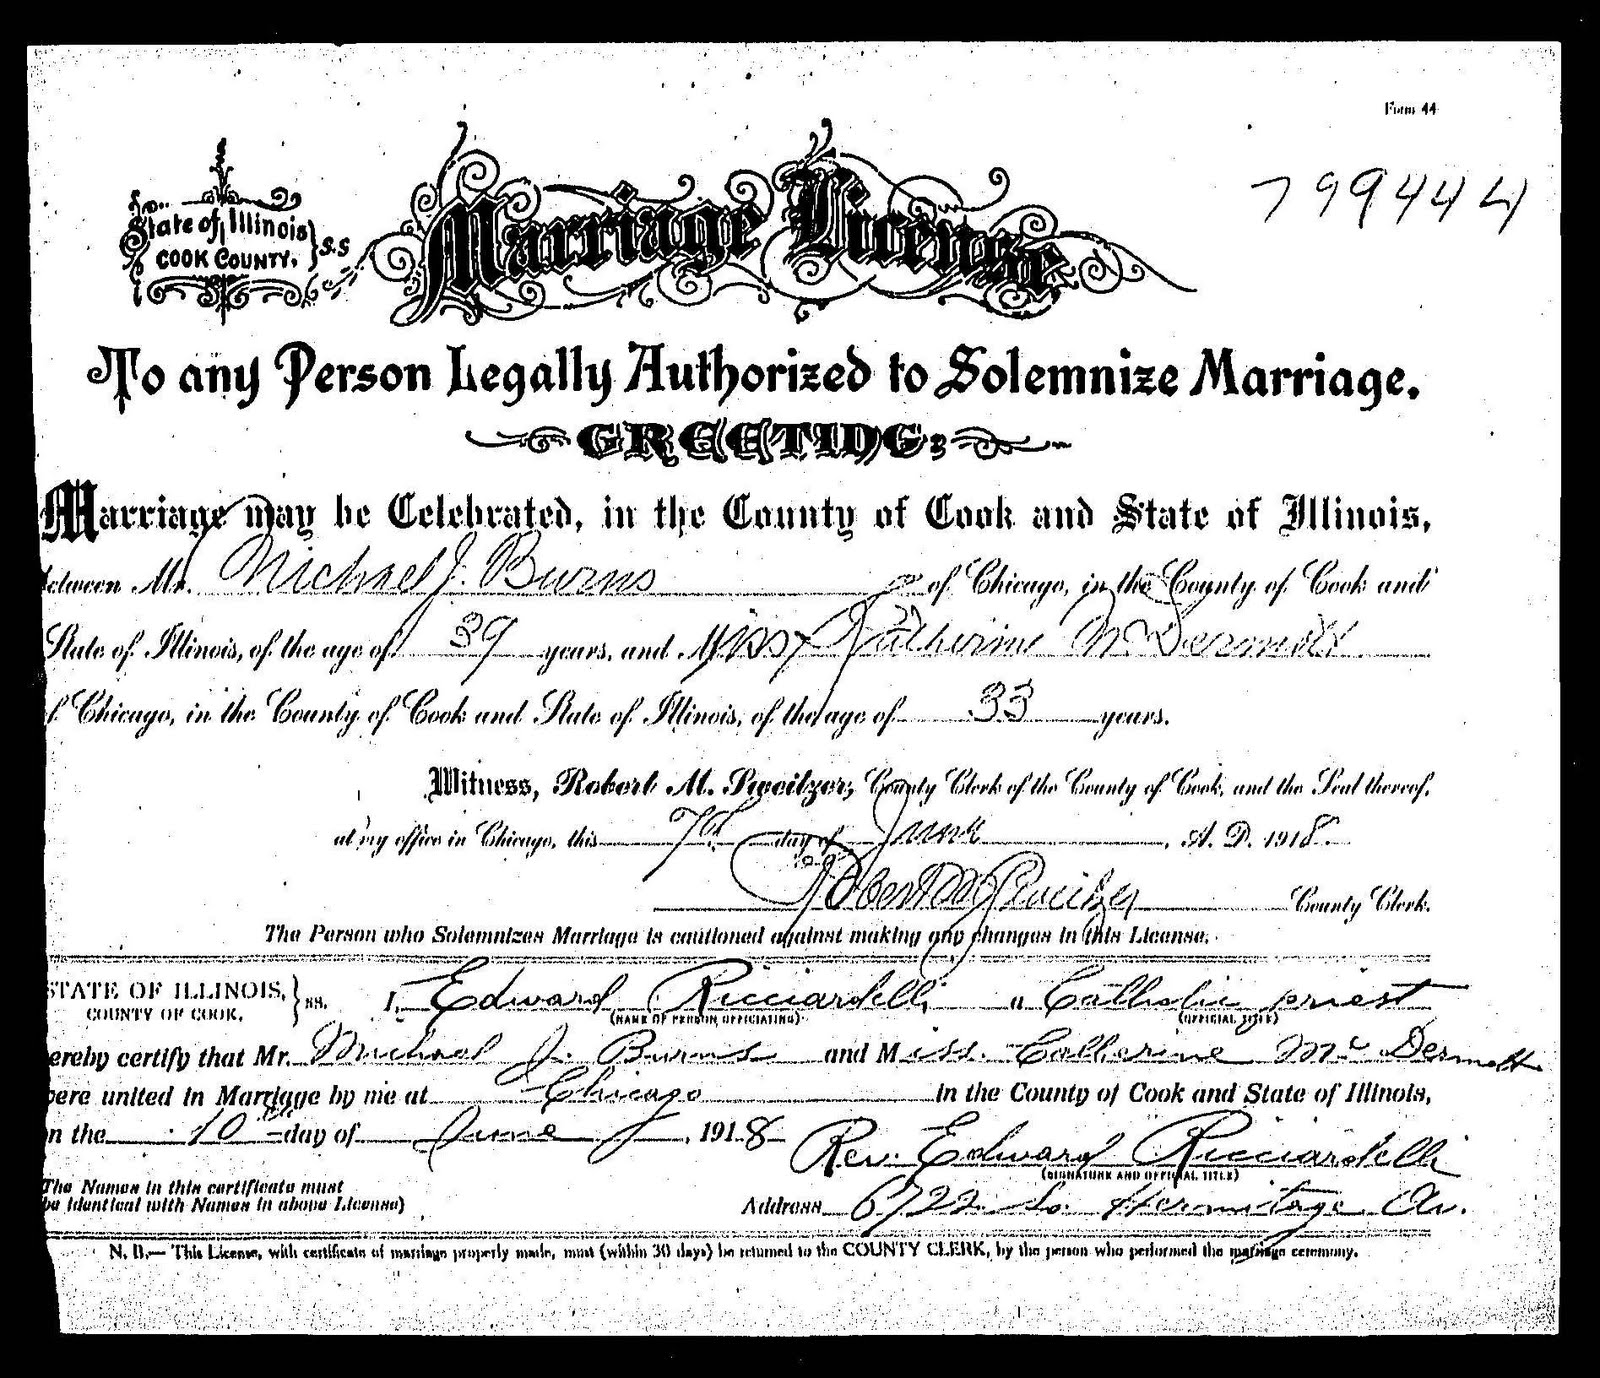 marriage certificate county cook catherine michael mcdermott illinois burns mary fourth daughter second child